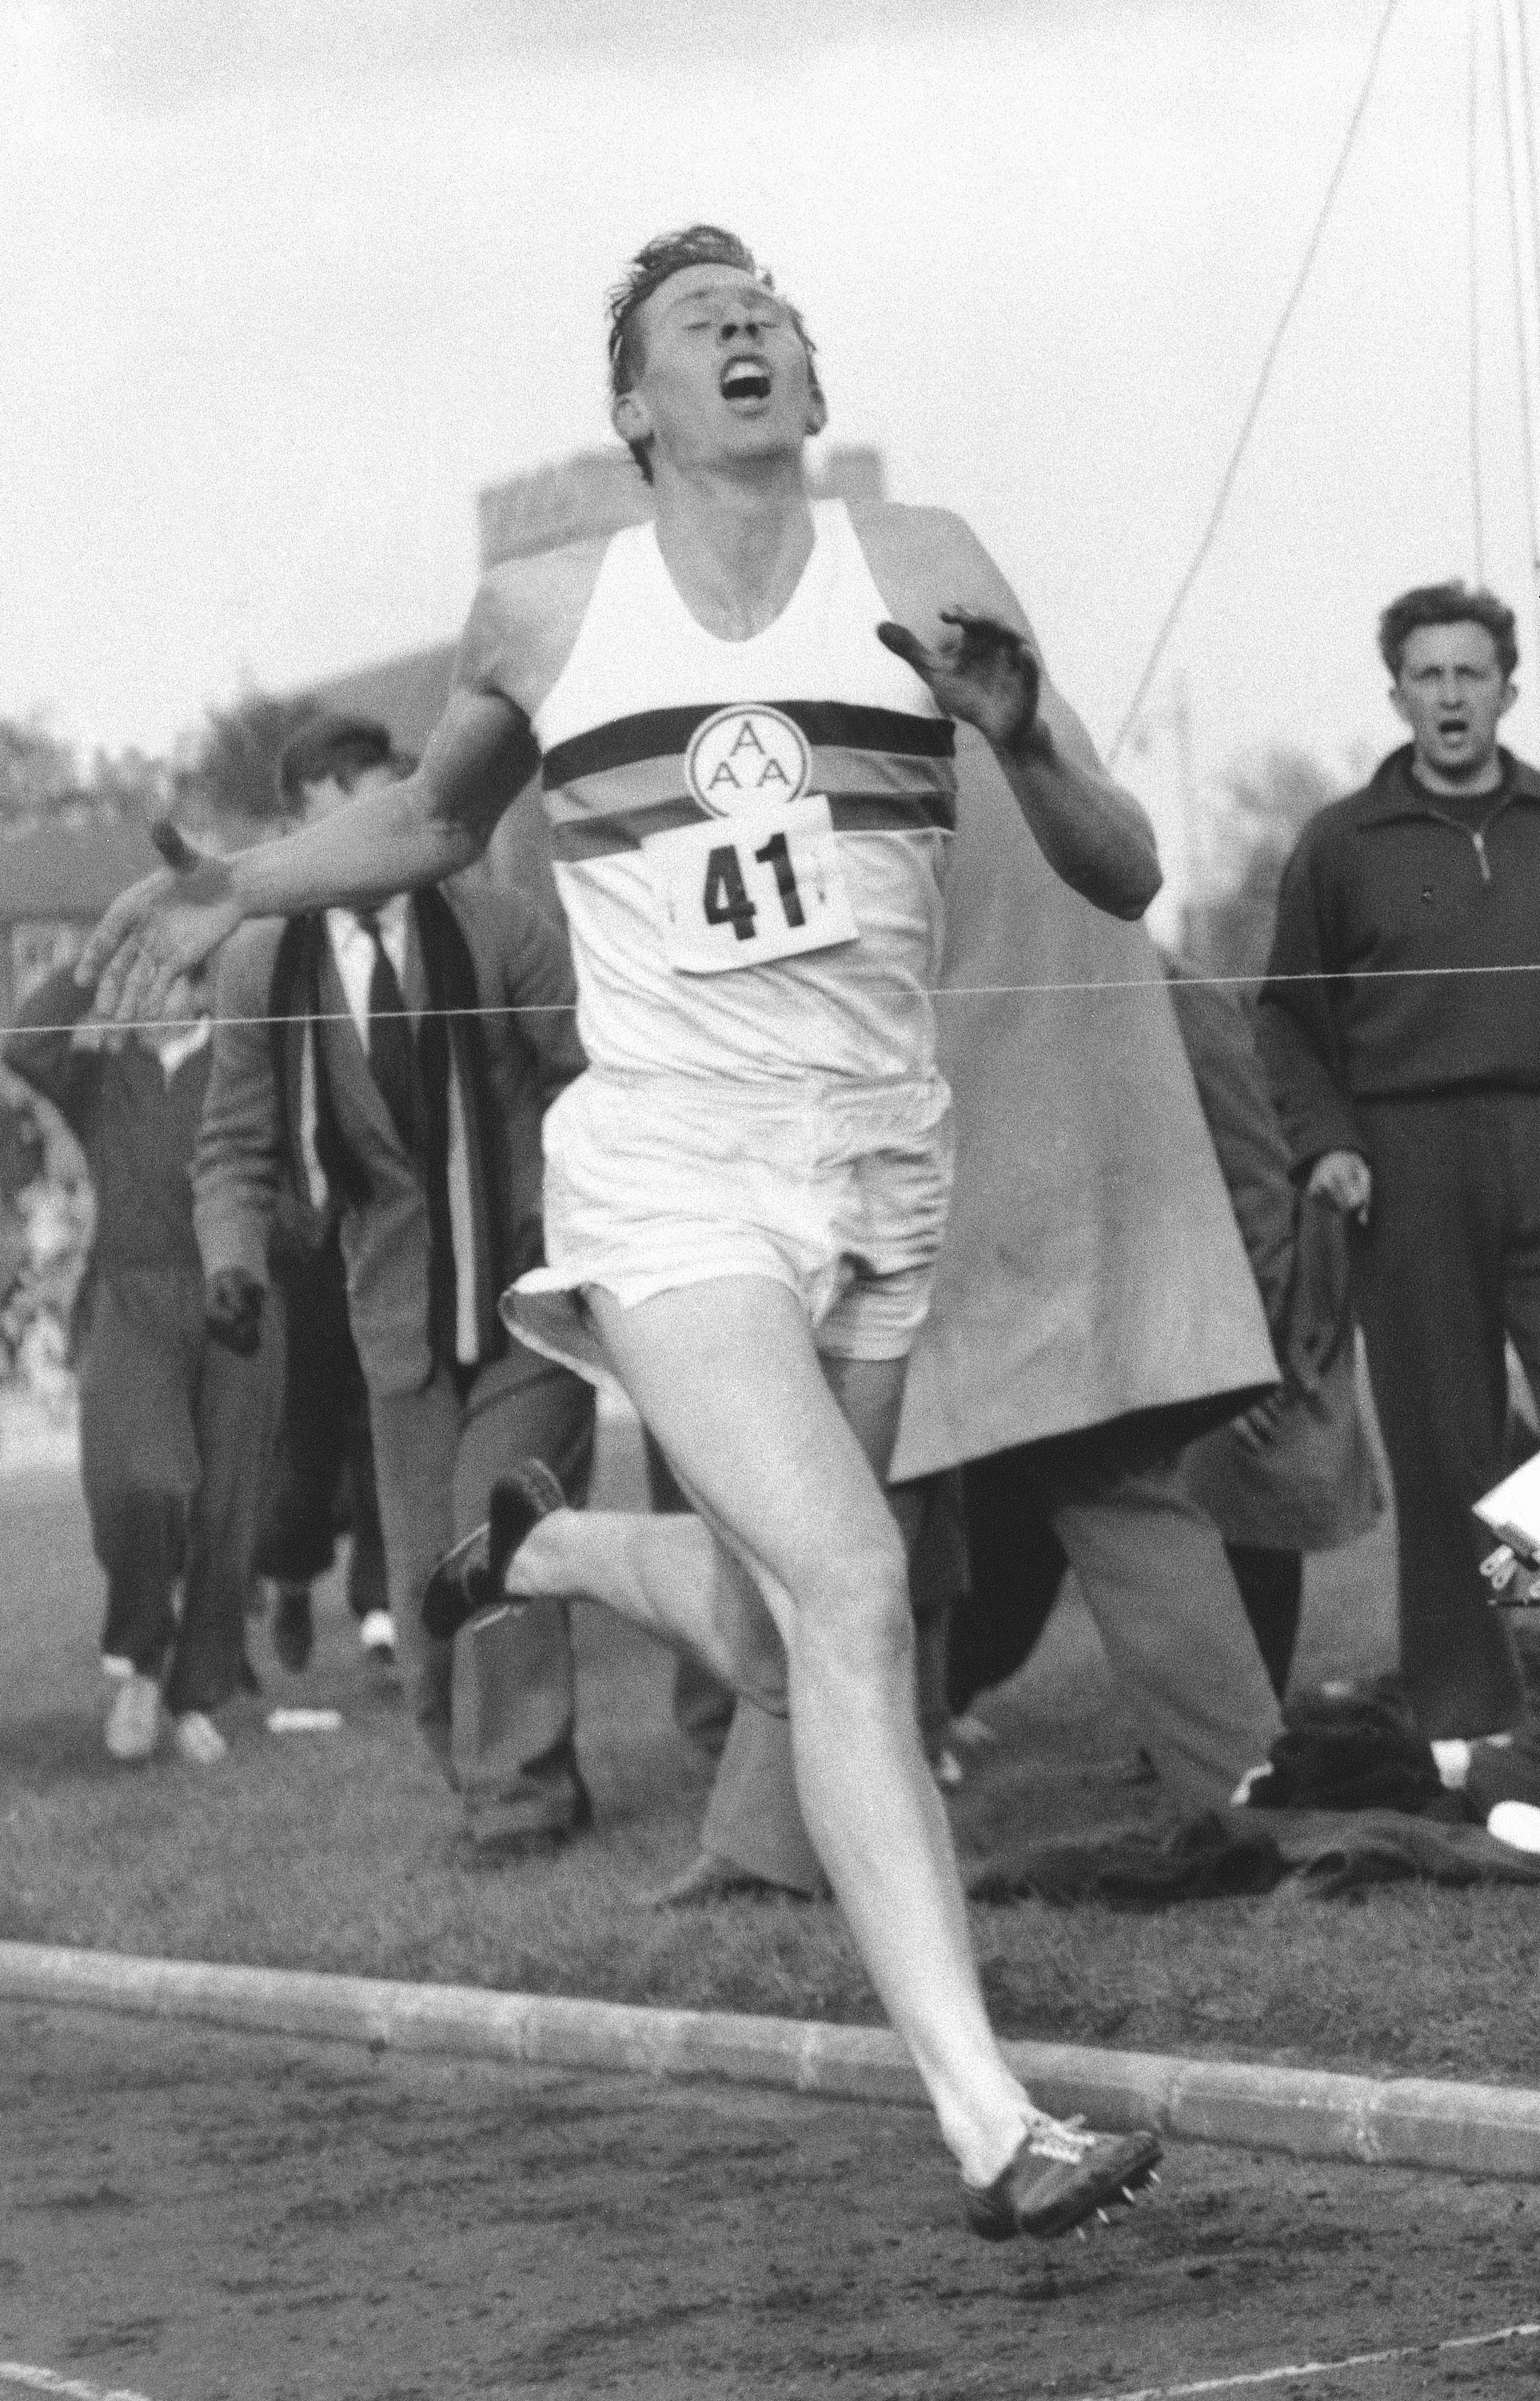 FILE - In this May 6, 1954 file photo, Britain's Roger Bannister hits the tape to break the four-minute mile in Oxford, England. A statement released Sunday March 4, 2018, on behalf of Bannister's family said Sir Roger Bannister died peacefully in Oxford on March 3, aged 88. (AP Photo/File)